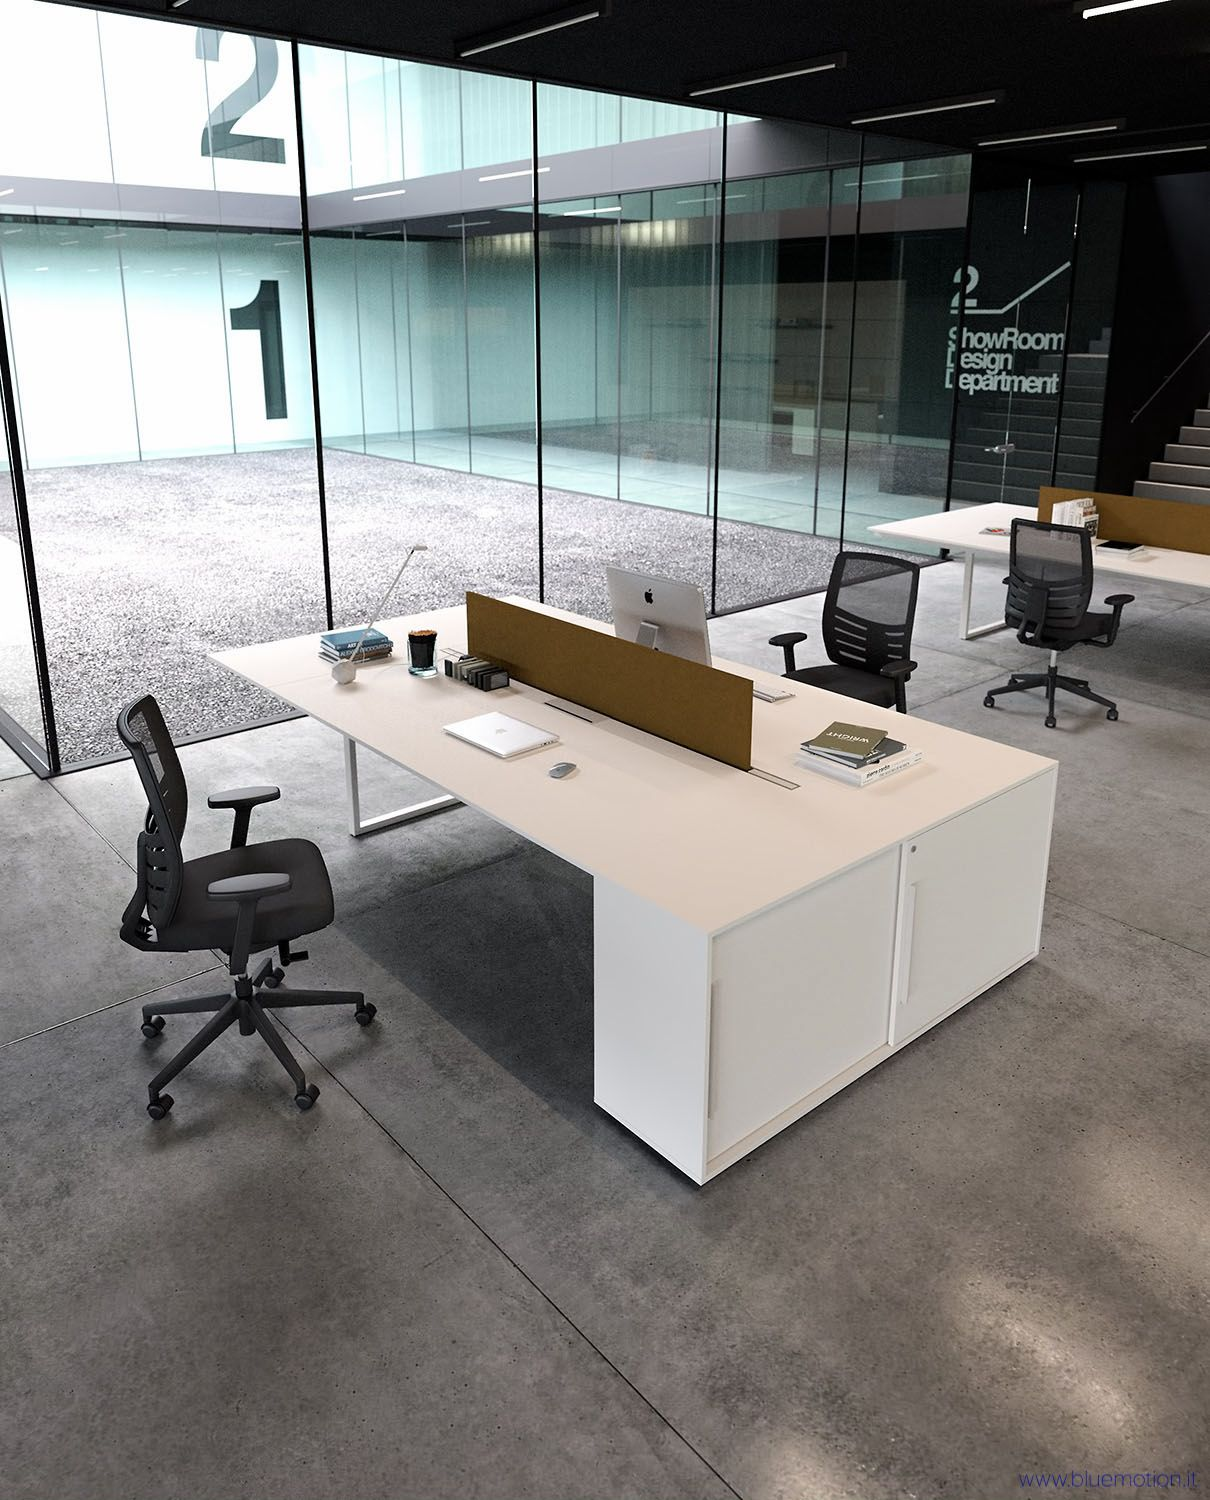 Harkavy furniture focuses on modern pieces made of wood and steel - Modern Office Furniture Render